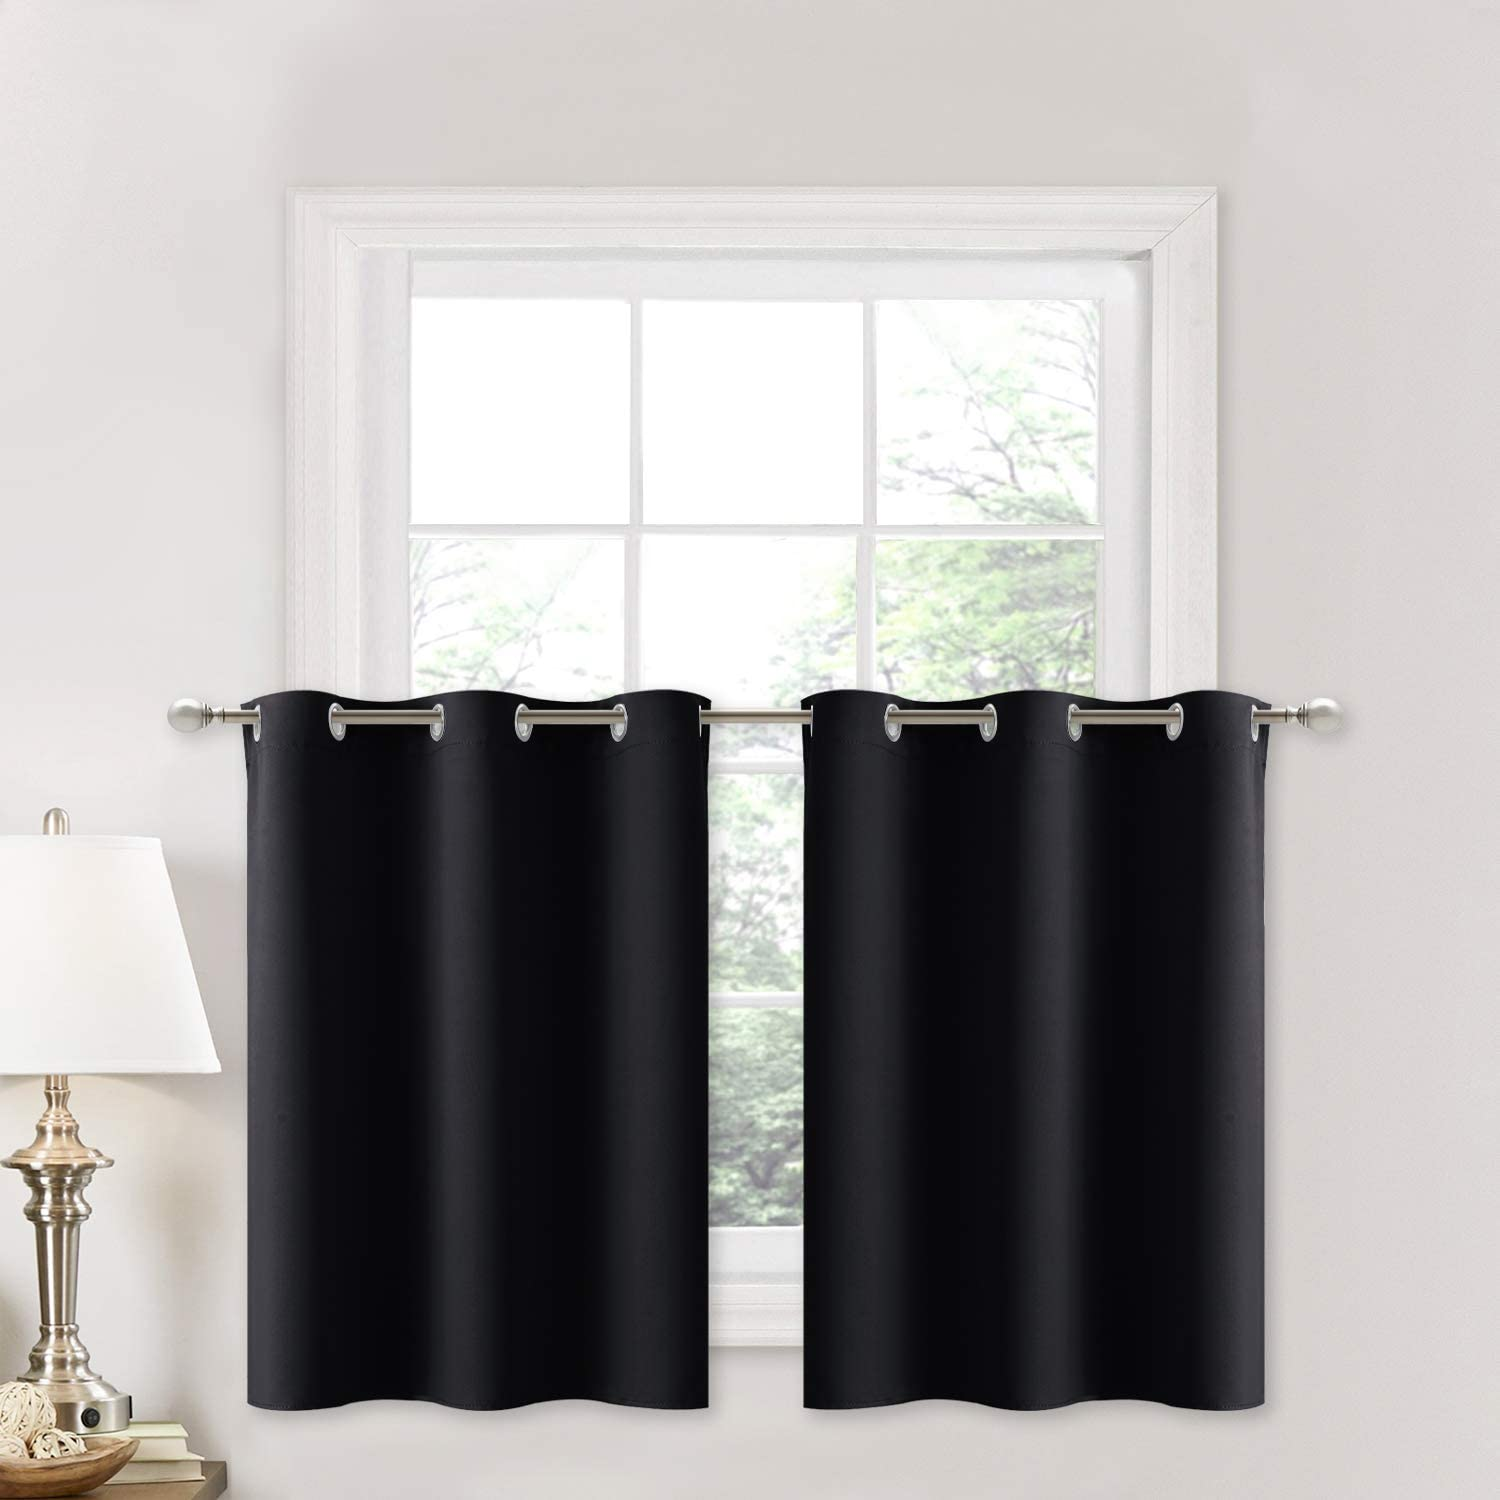 NICETOWN Black Small Window Valances Curtains - Thermal Insulated Home Decor Blackout Grommet Tier Curtains Drapes (42W by 24L + 1.2 inches Header, Black, 2 Pieces)